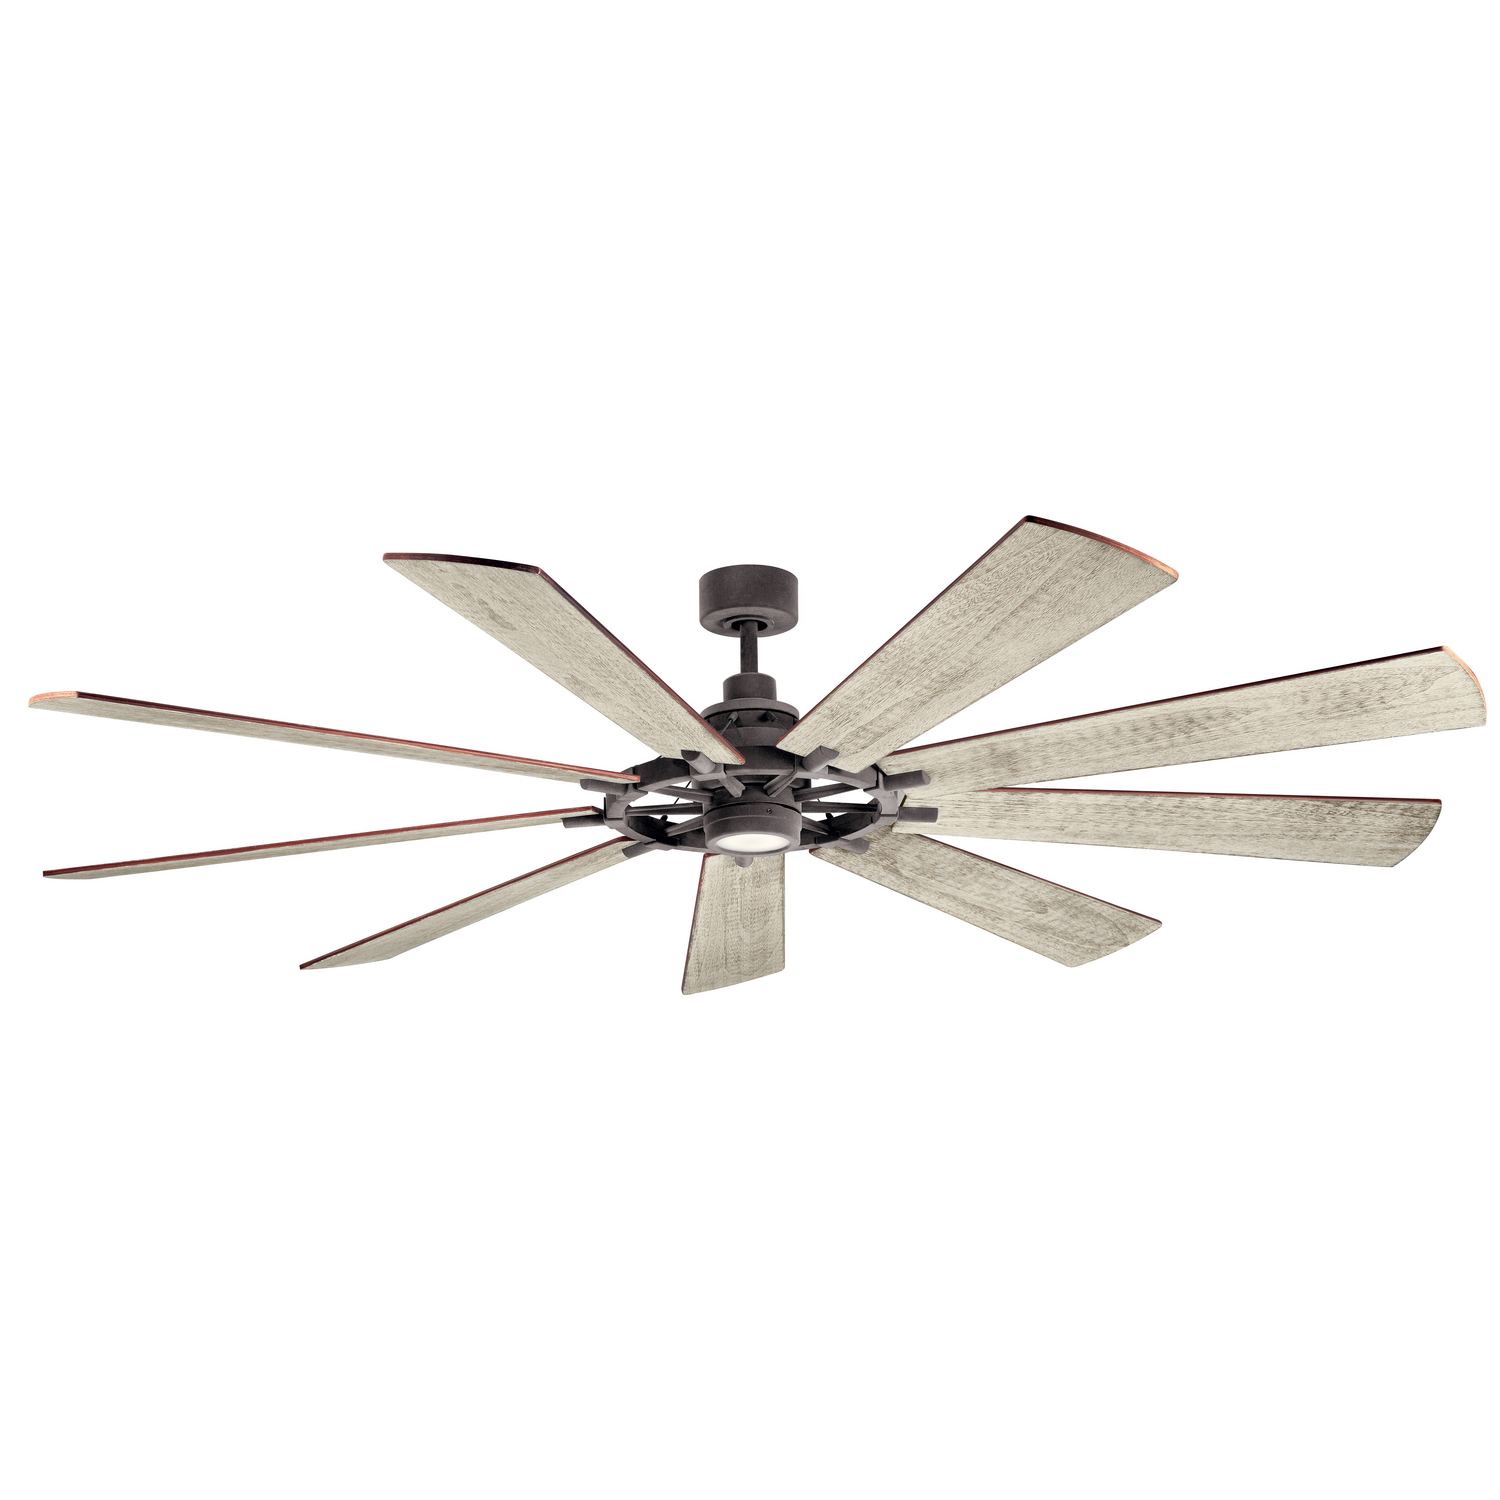 85 inchCeiling Fan from the XL collection by Kichler 300285WZC